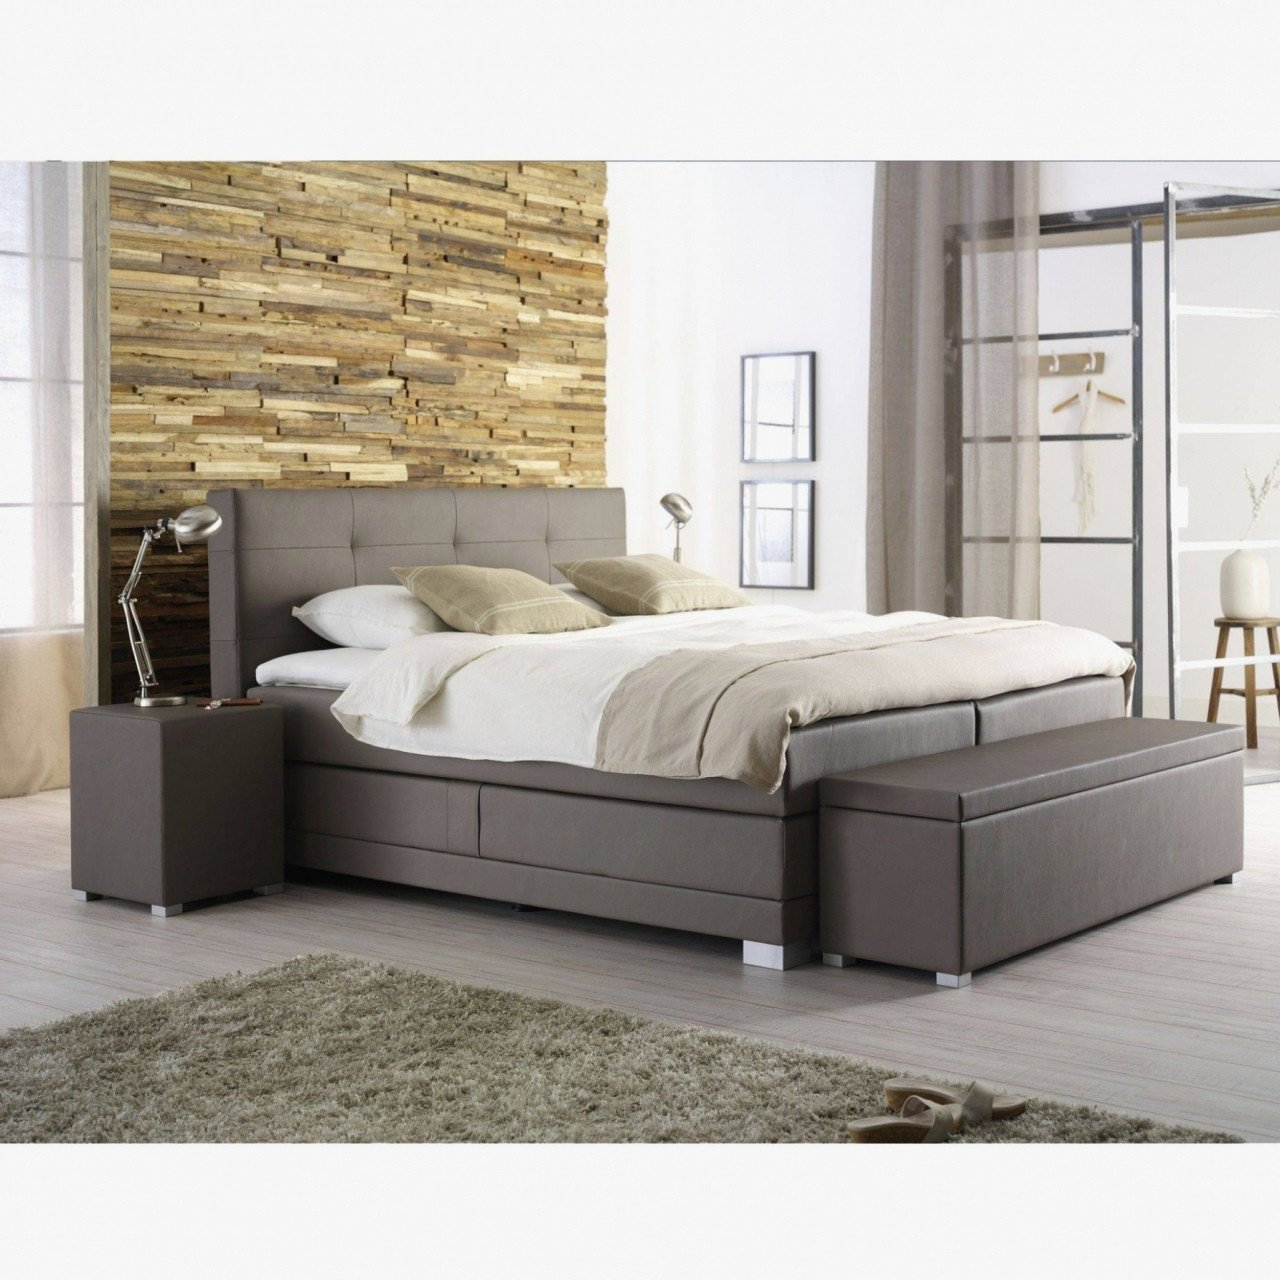 Wood Queen Bedroom Set Unique Bed with Drawers Under — Procura Home Blog